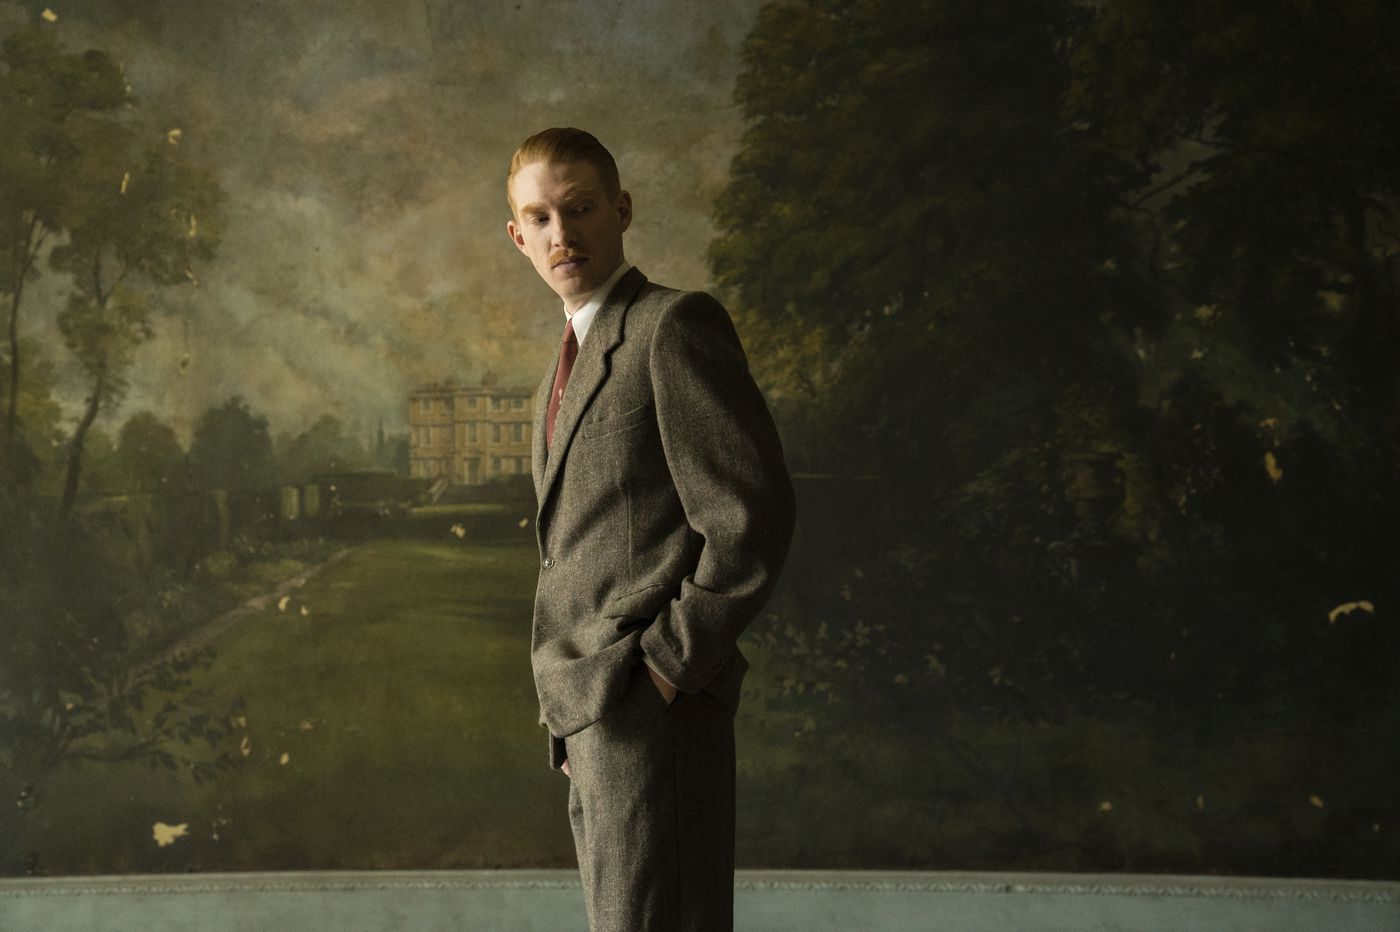 There's little to scare you 'The Little Stranger'